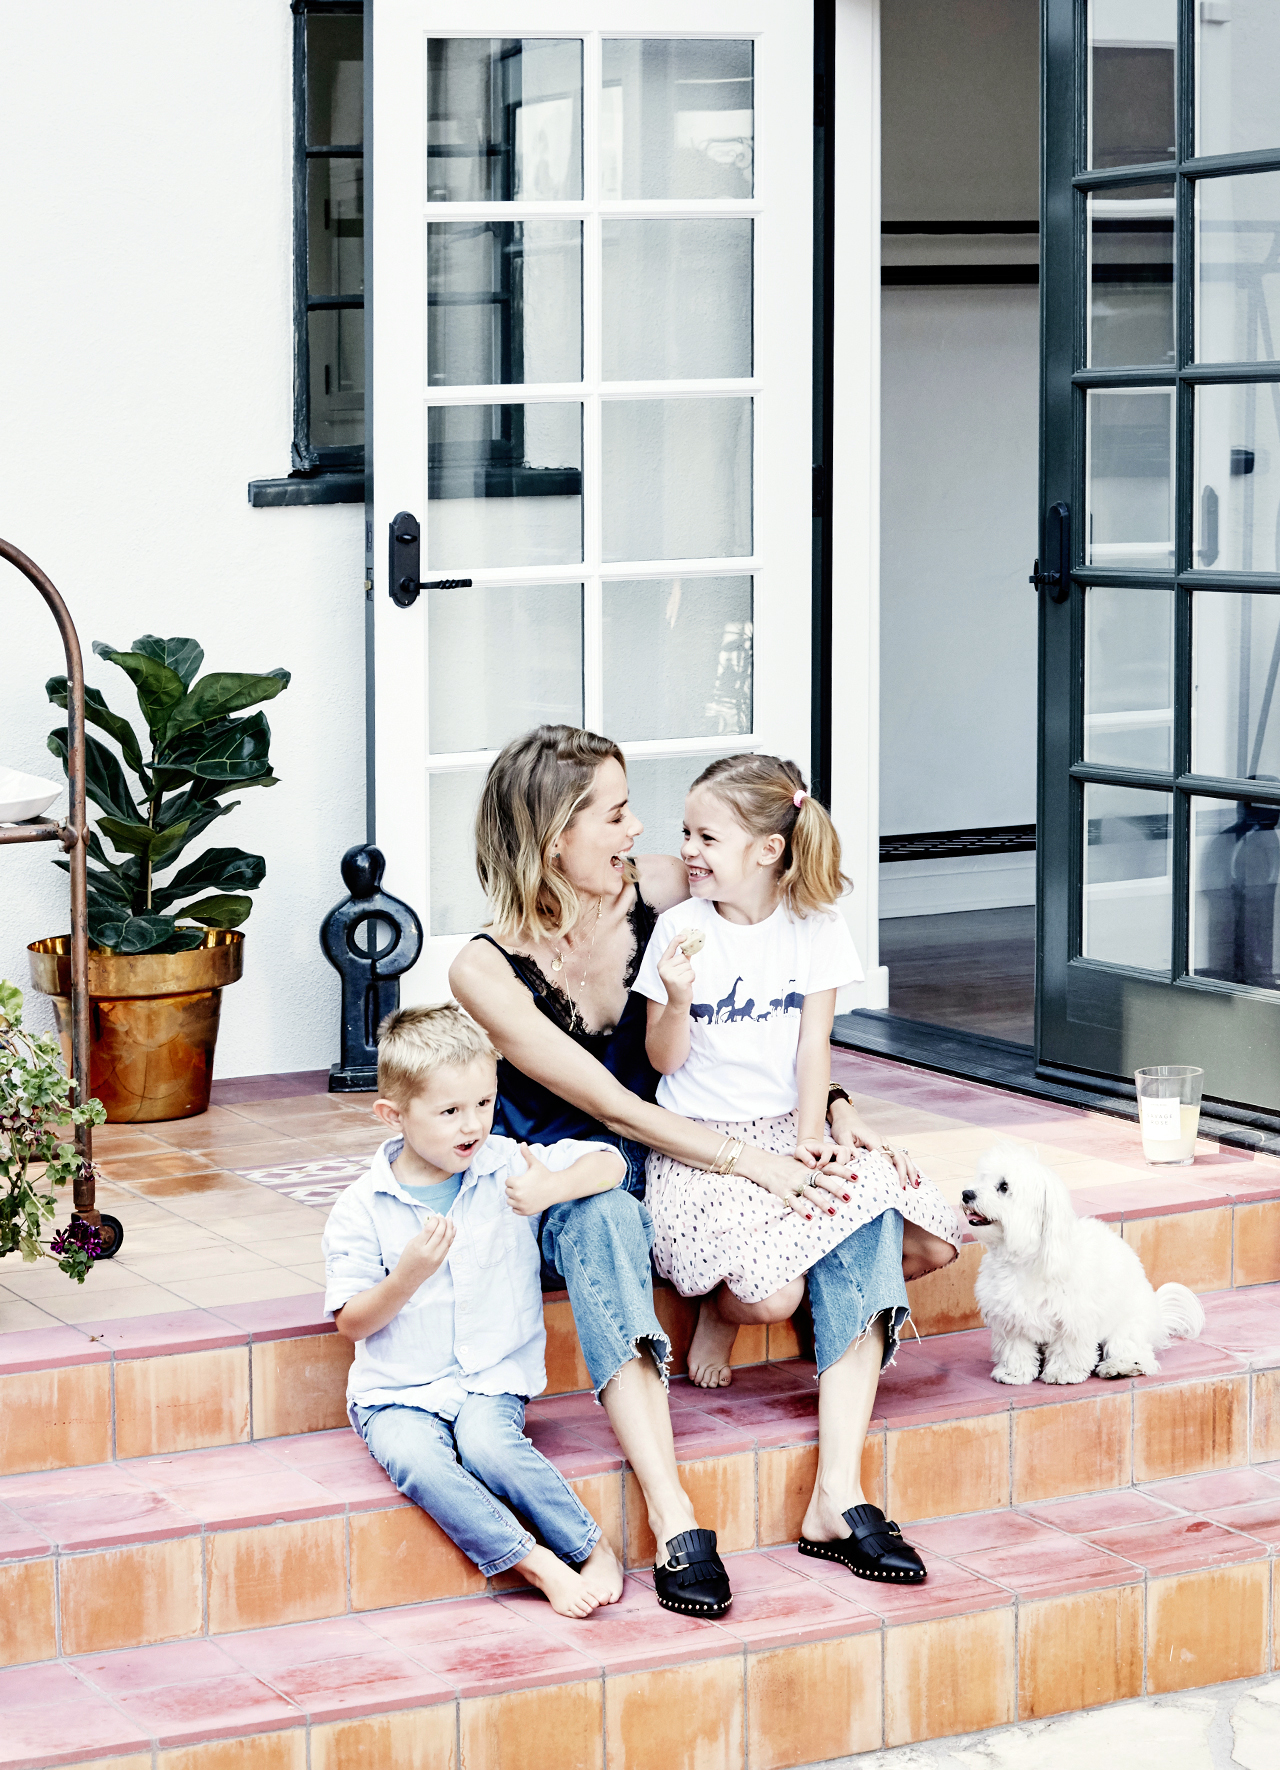 We Step Inside The Family Home Of L.A. Based Fashion Designer Anine Bing,  As She Opens Up About Motherhood, Guilt, And Chasing Balance.